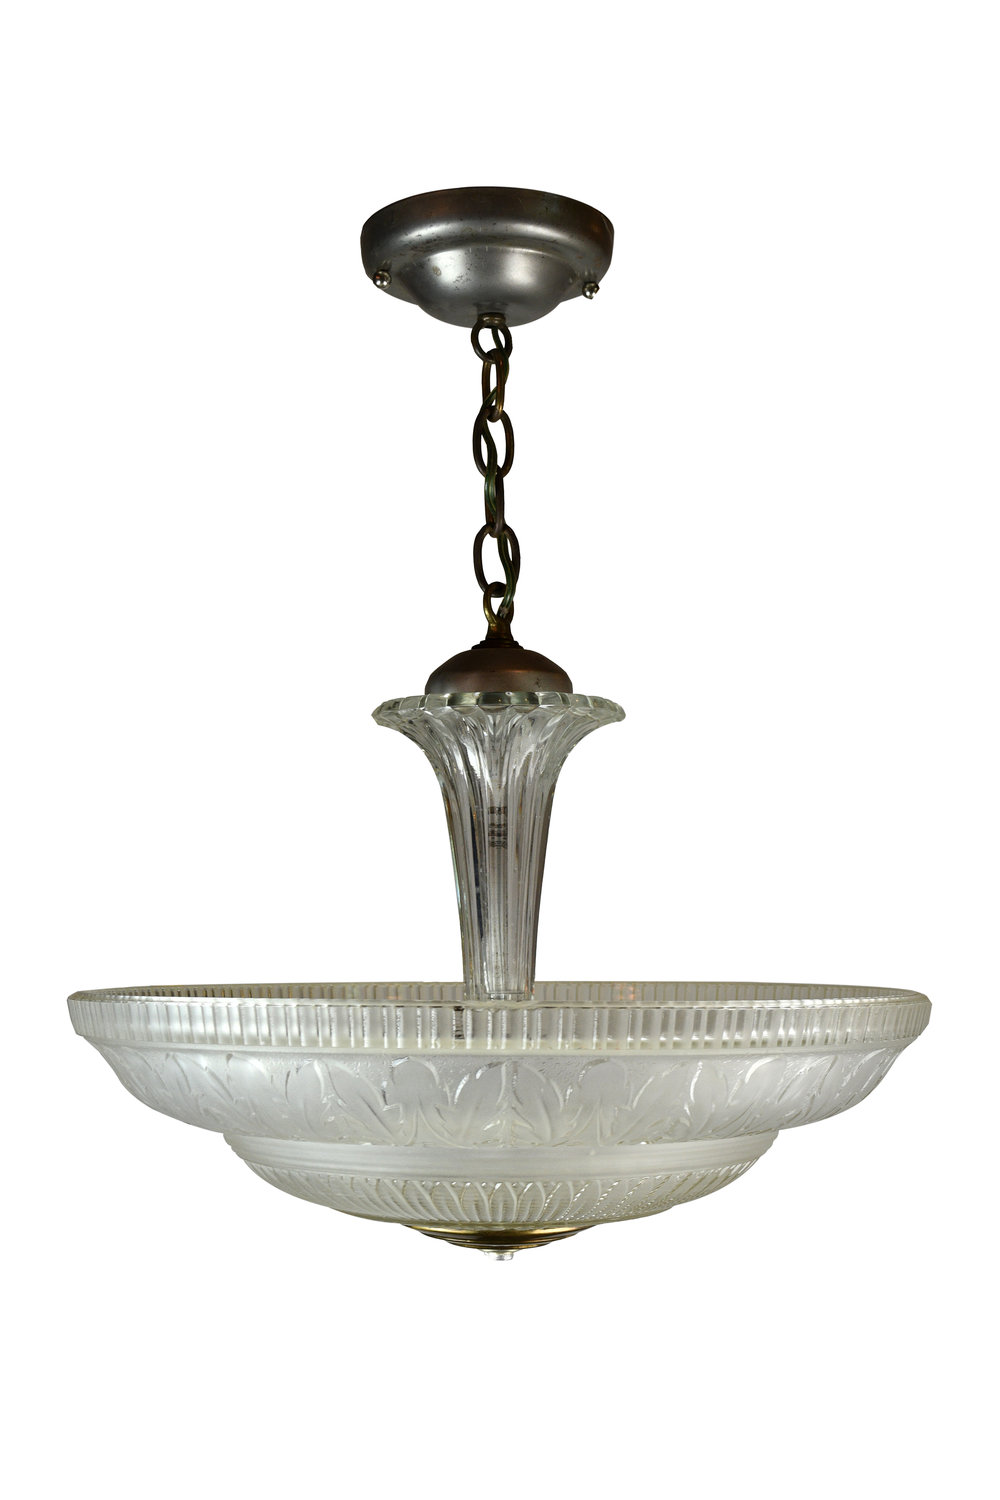 47820-glass-bowl-pendant-7.jpg